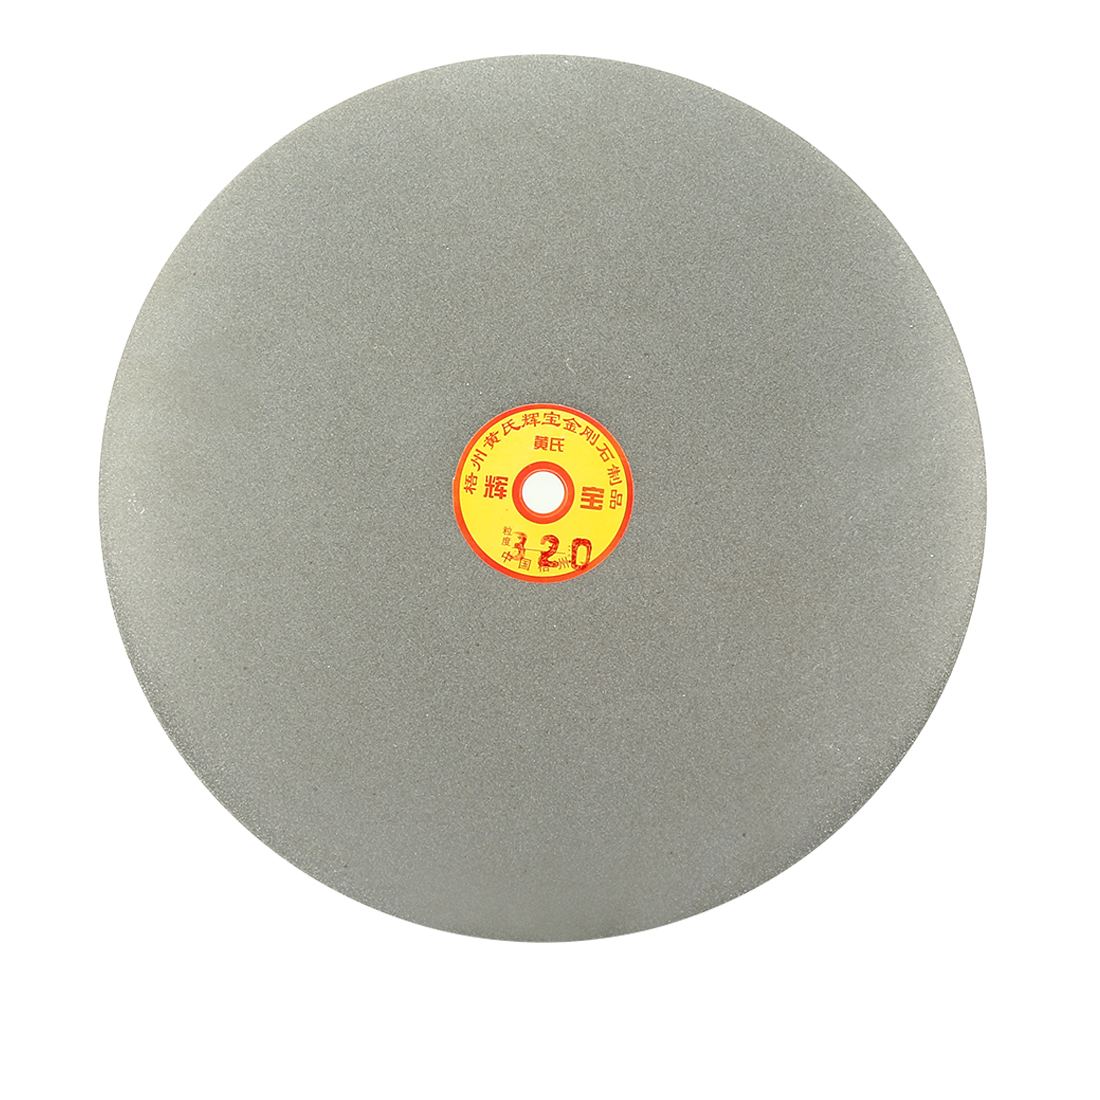 250mm 10-inch Grit 320 Diamond Coated Flat Lap Disk Wheel Grinding Sanding Disc